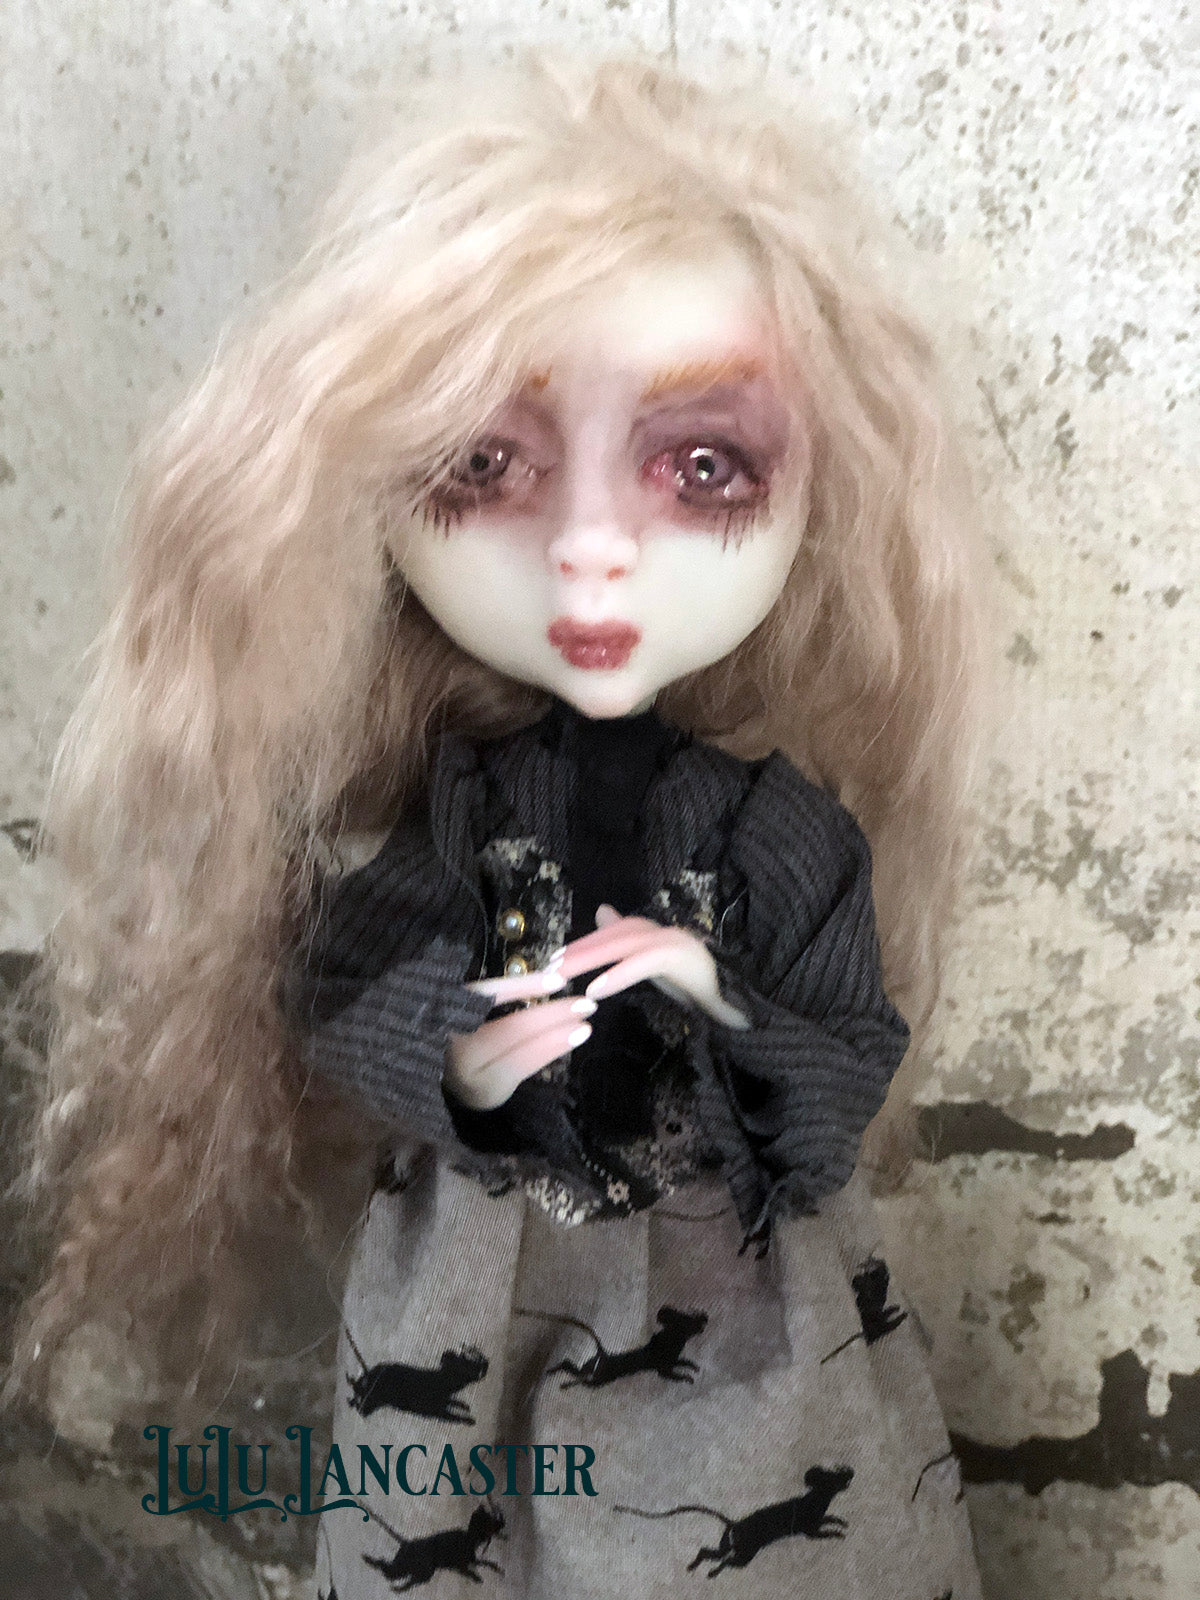 Malice Sister of the Moon Witch OOAK LuLu Lancaster Art Doll